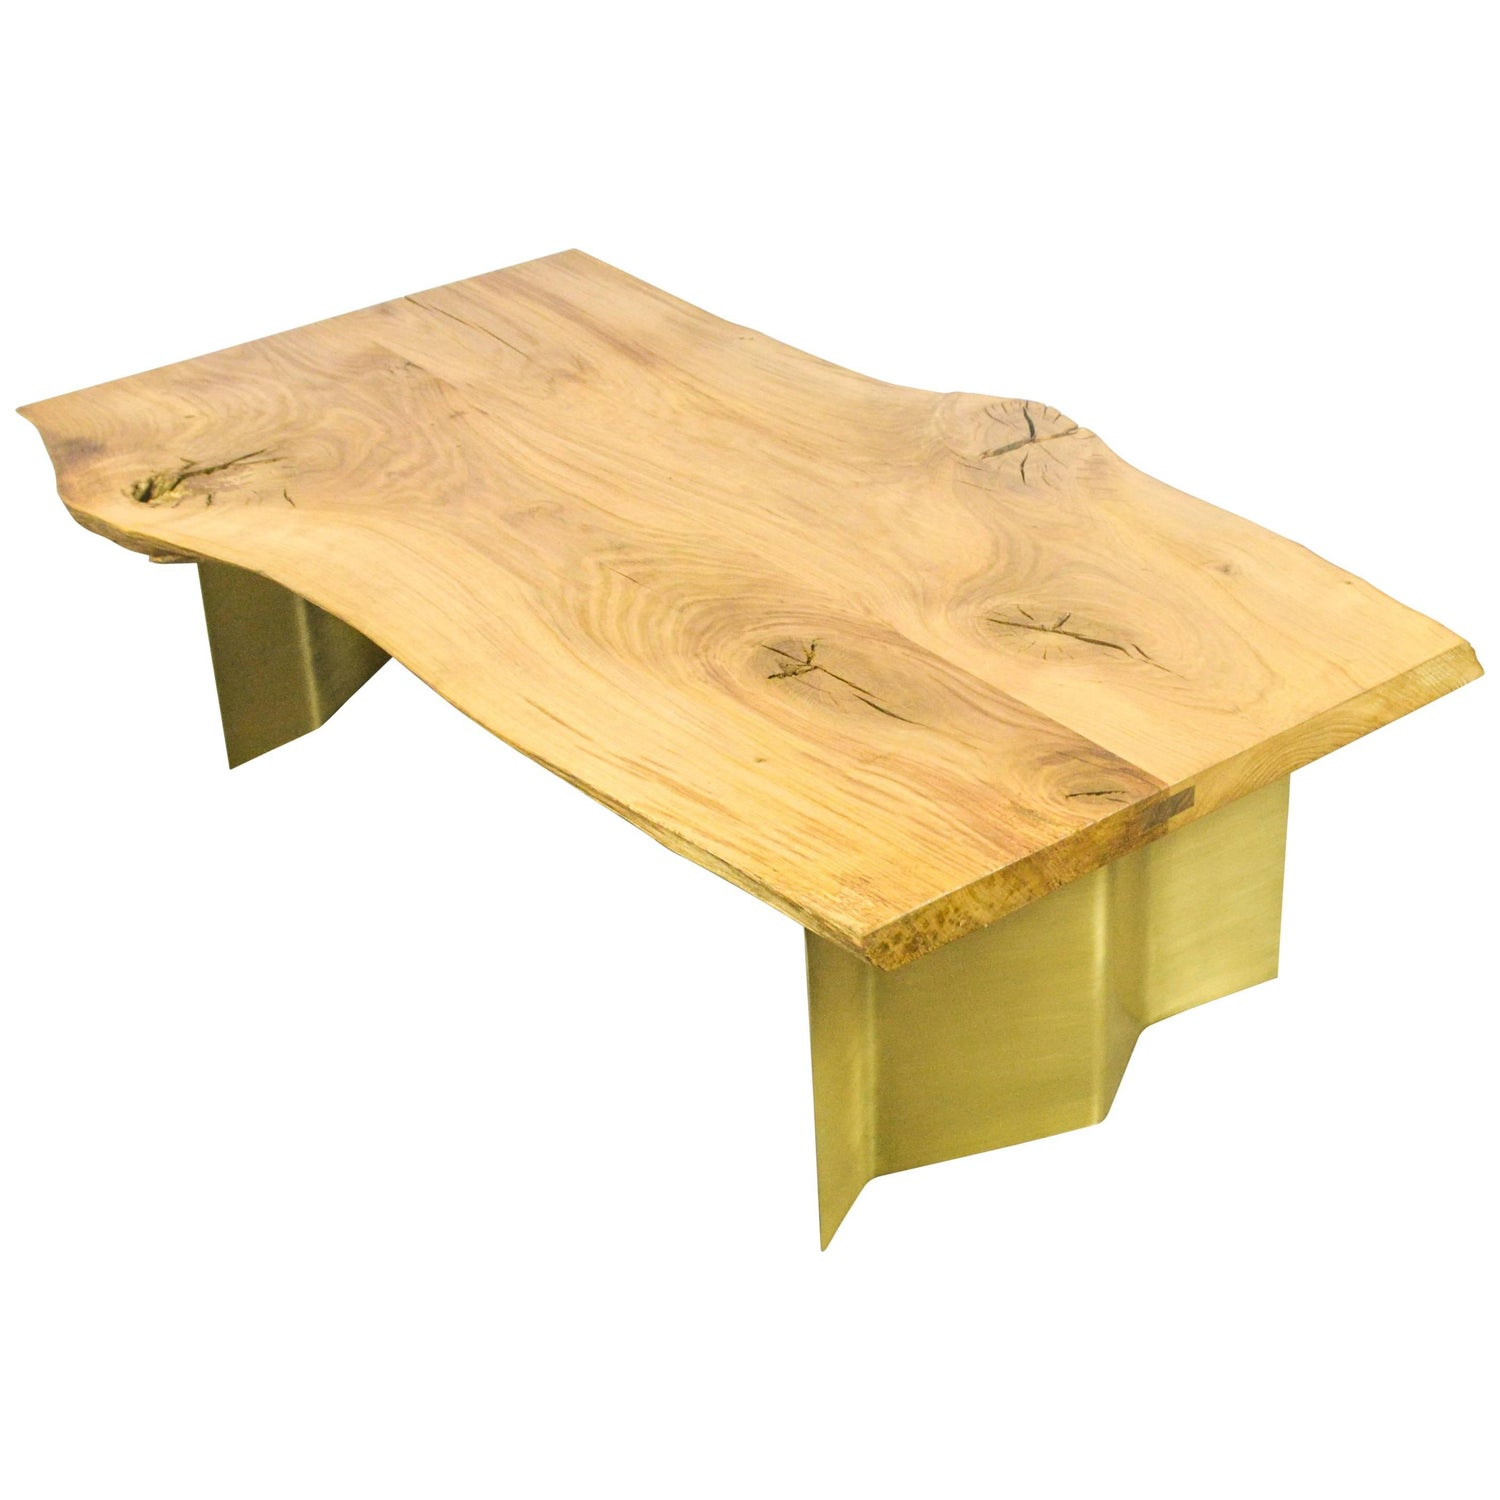 Resin River and Live Edge Wood Coffee Table For Sale at 1stdibs